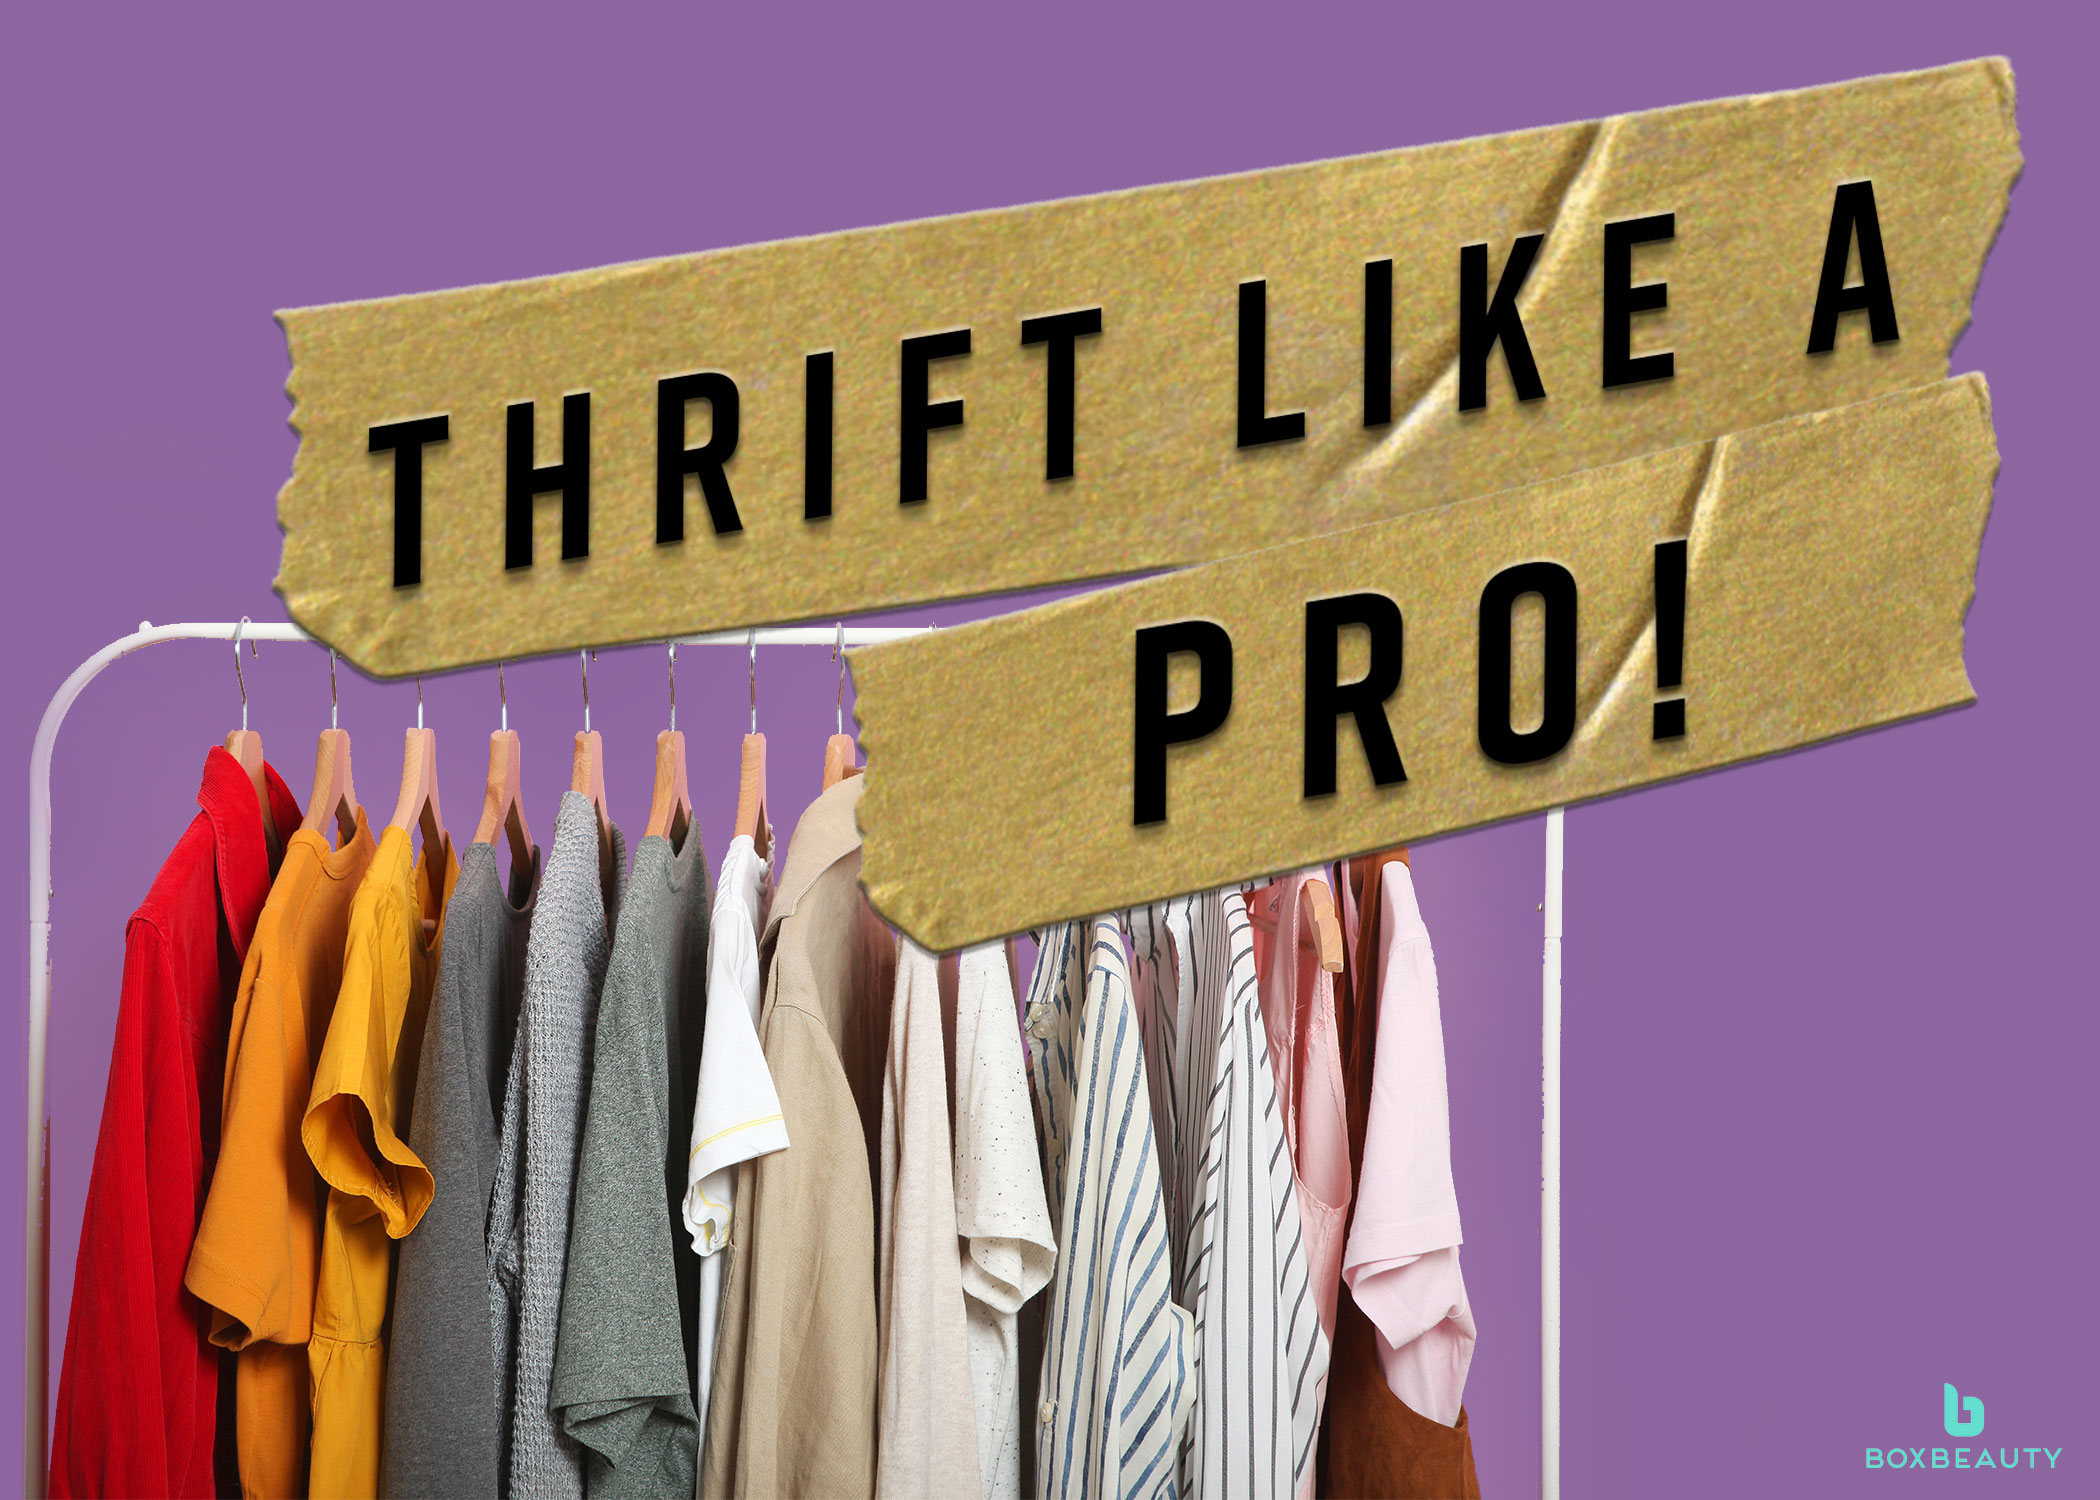 Thrift Like A Pro!